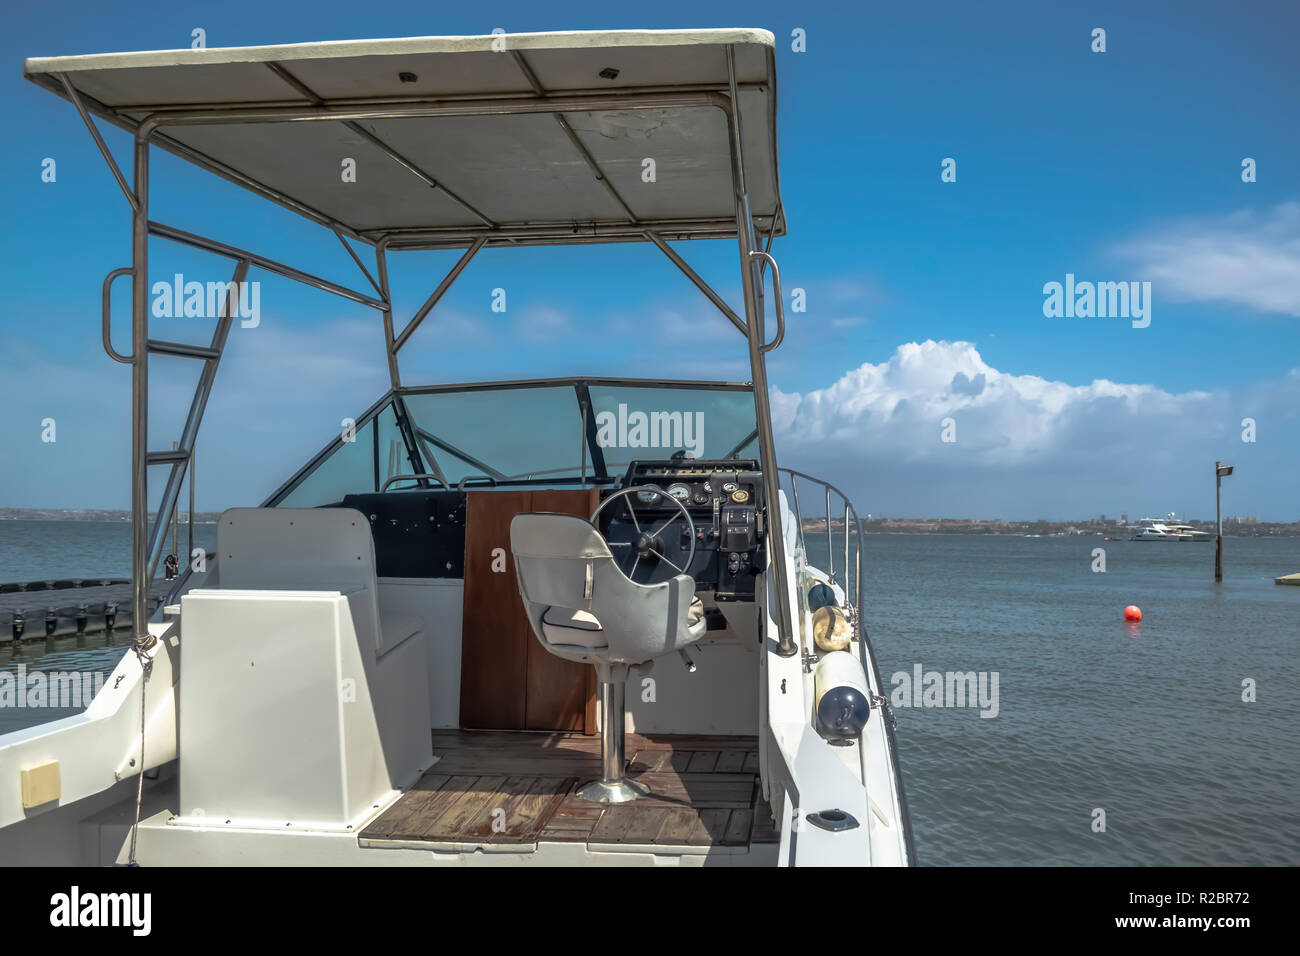 General exterior view of private recreational boat, parked at the beach in Mussulo island, Angola - Stock Image